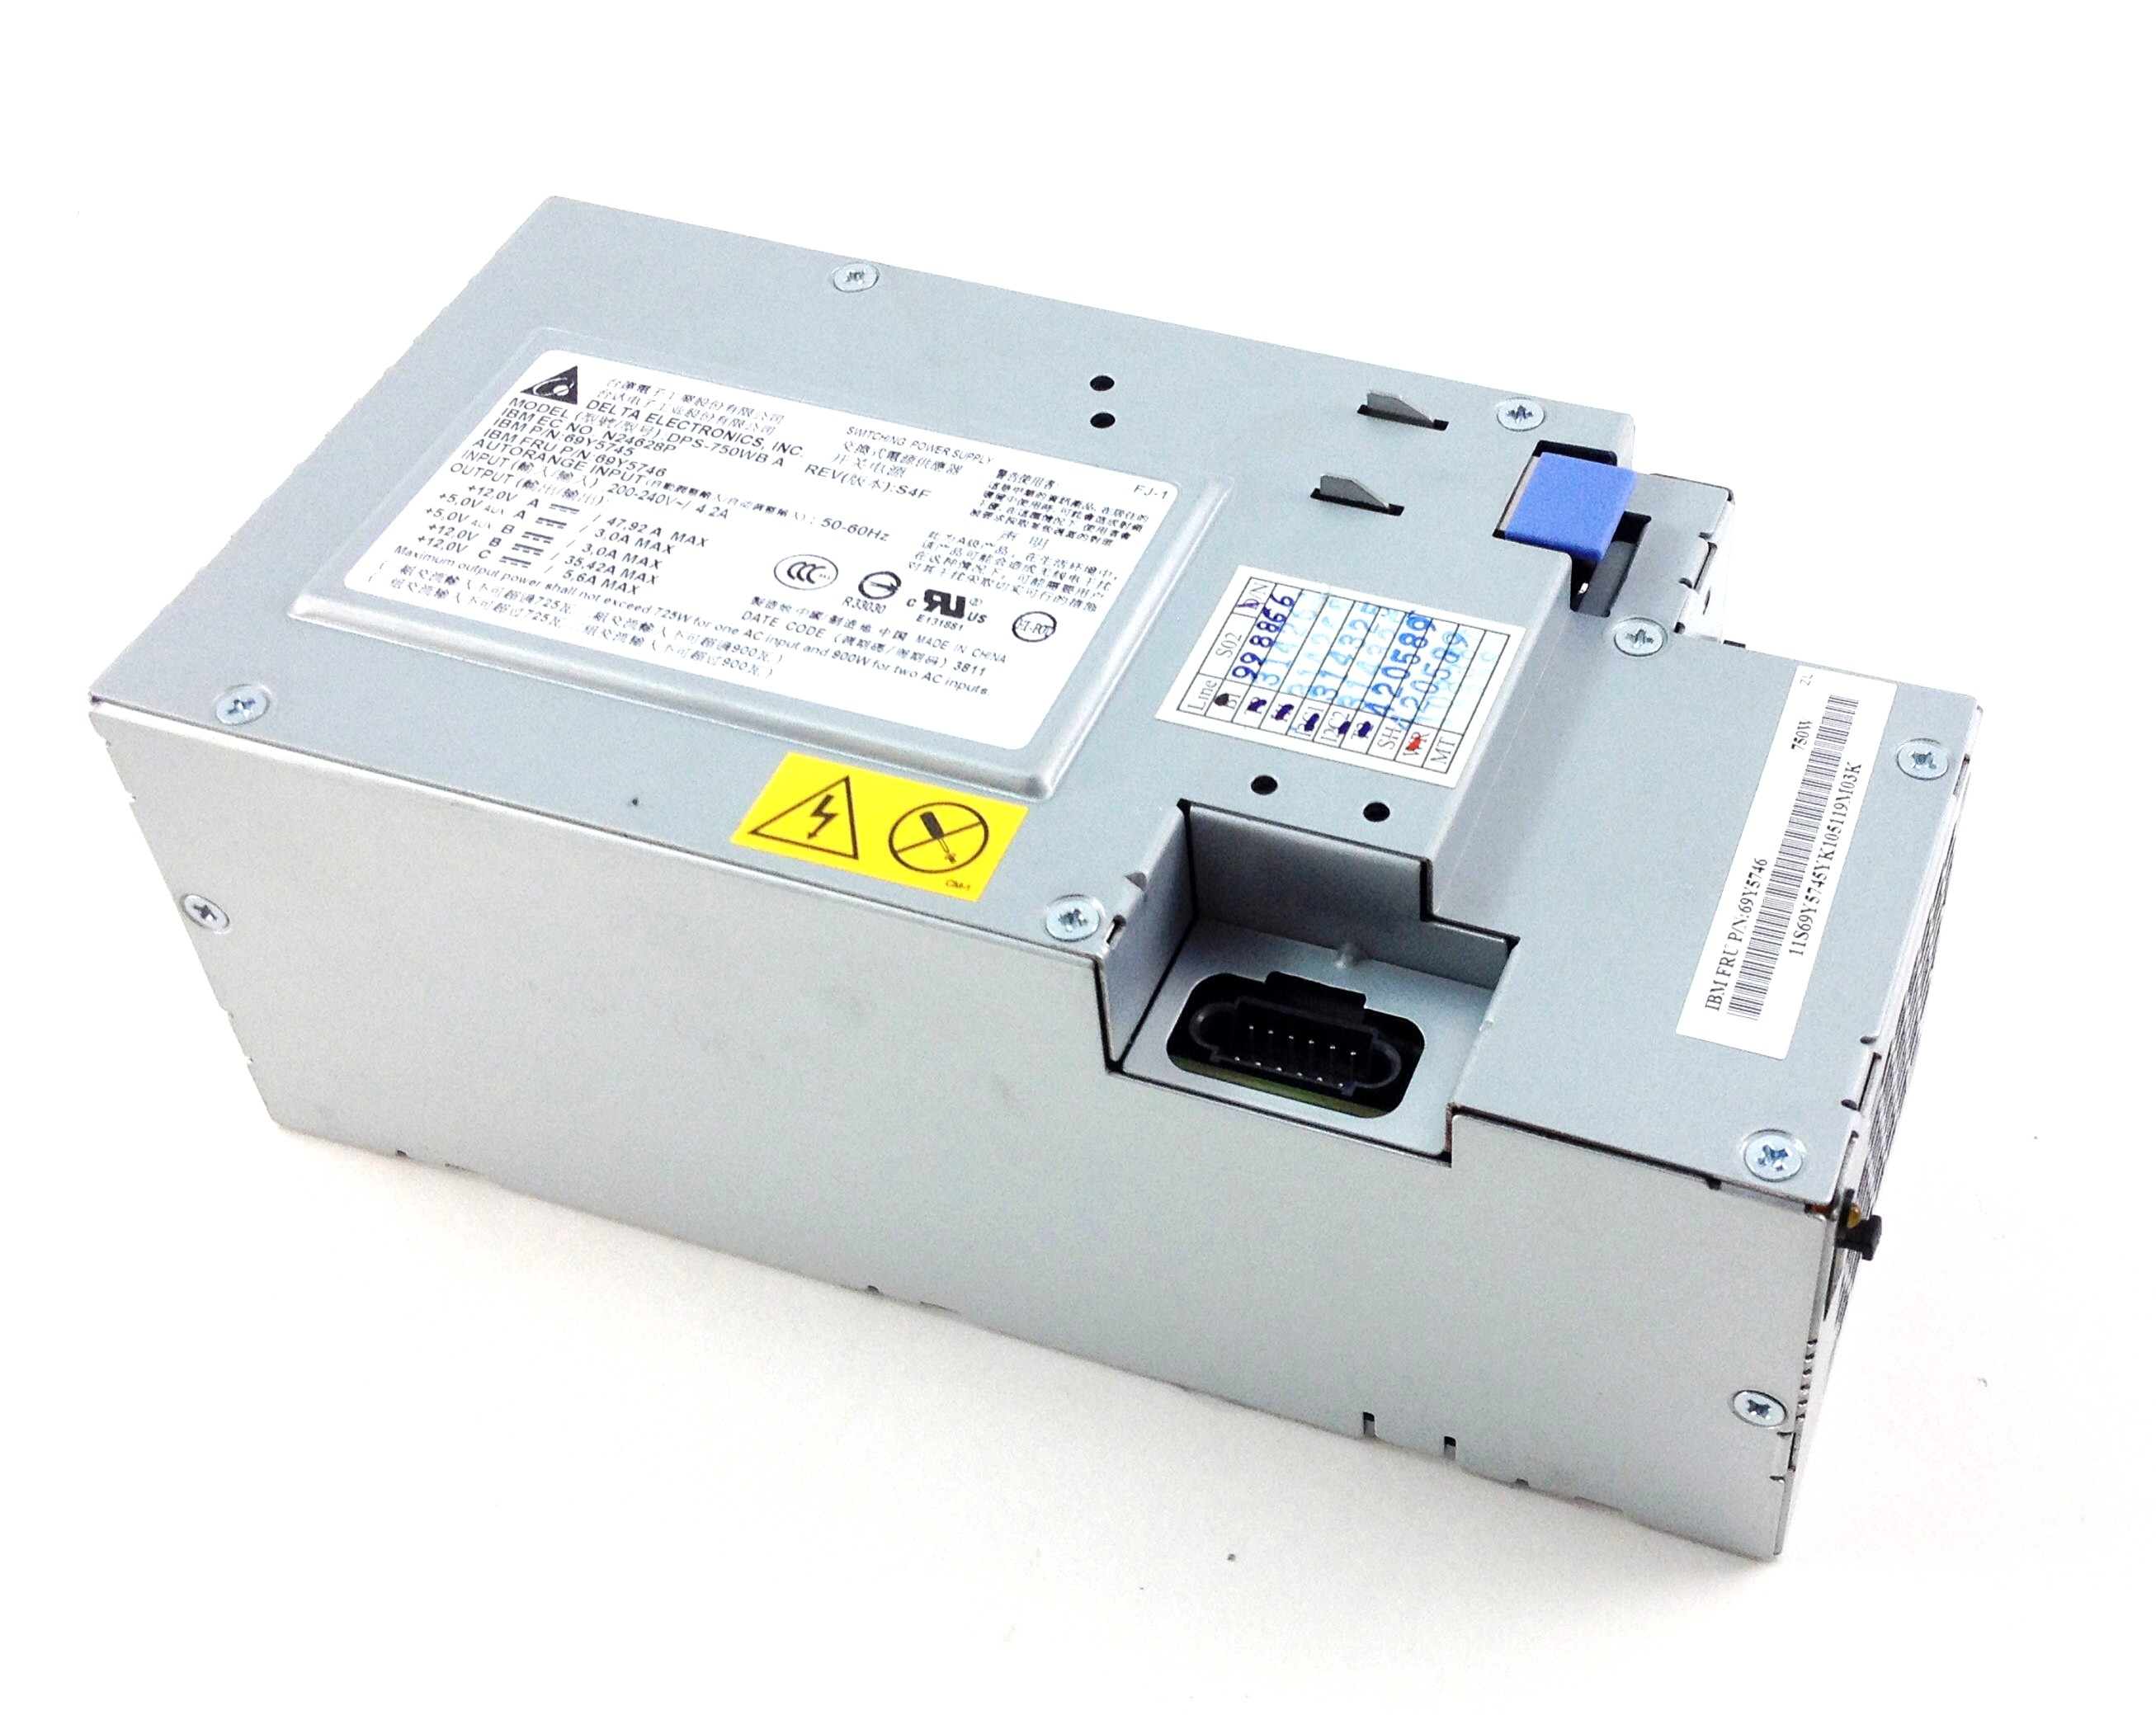 IBM DATAPLEX DX360 M3 750W SERVER POWER SUPPLY (69Y5746)